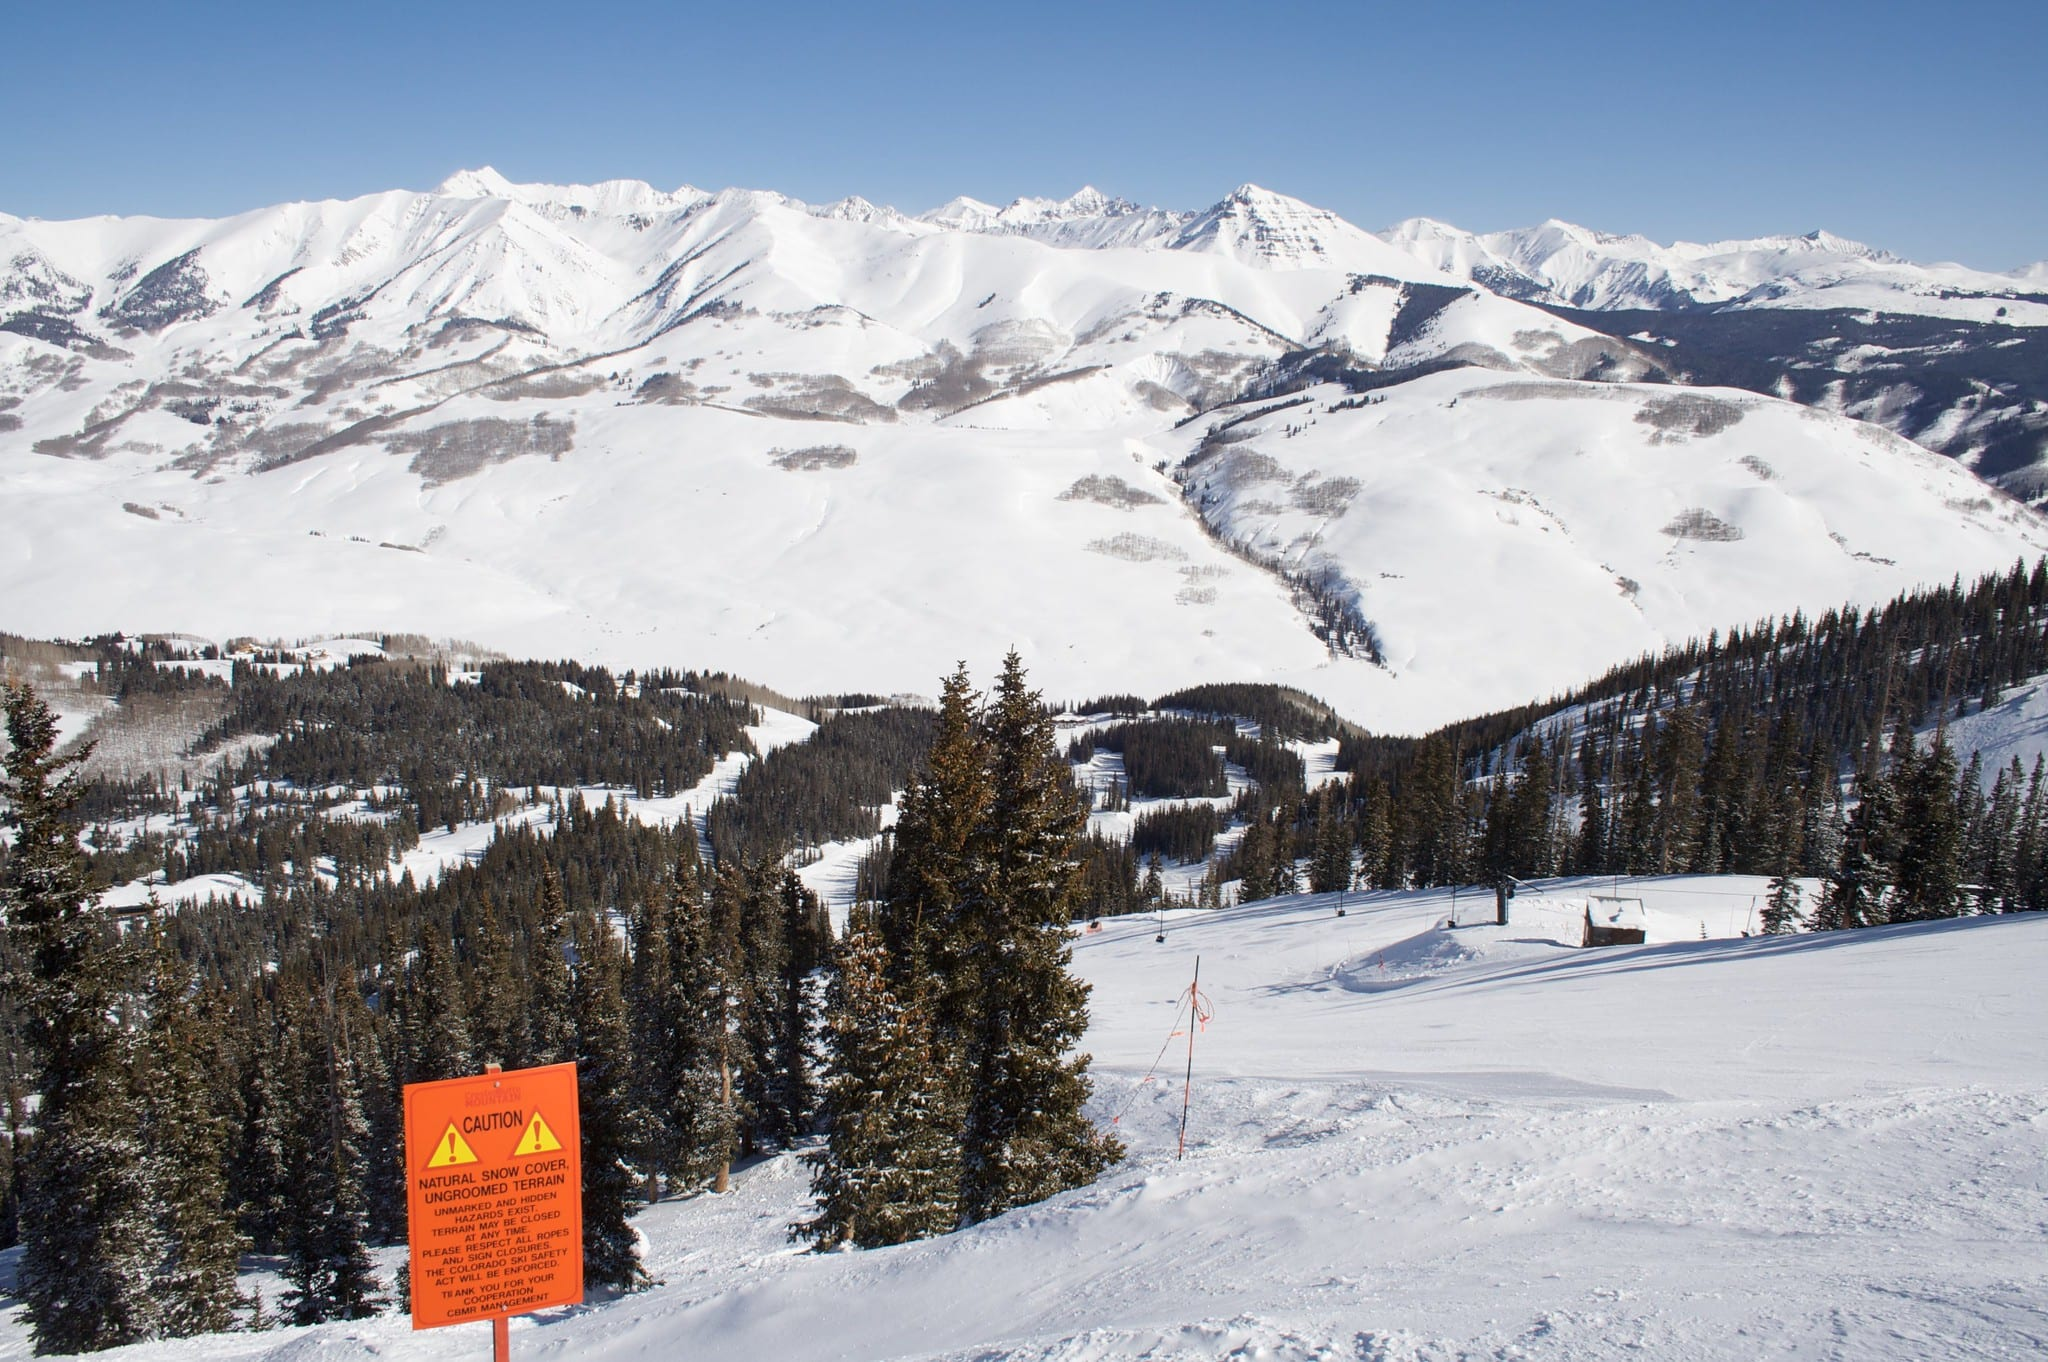 image of crested butte mountain resort